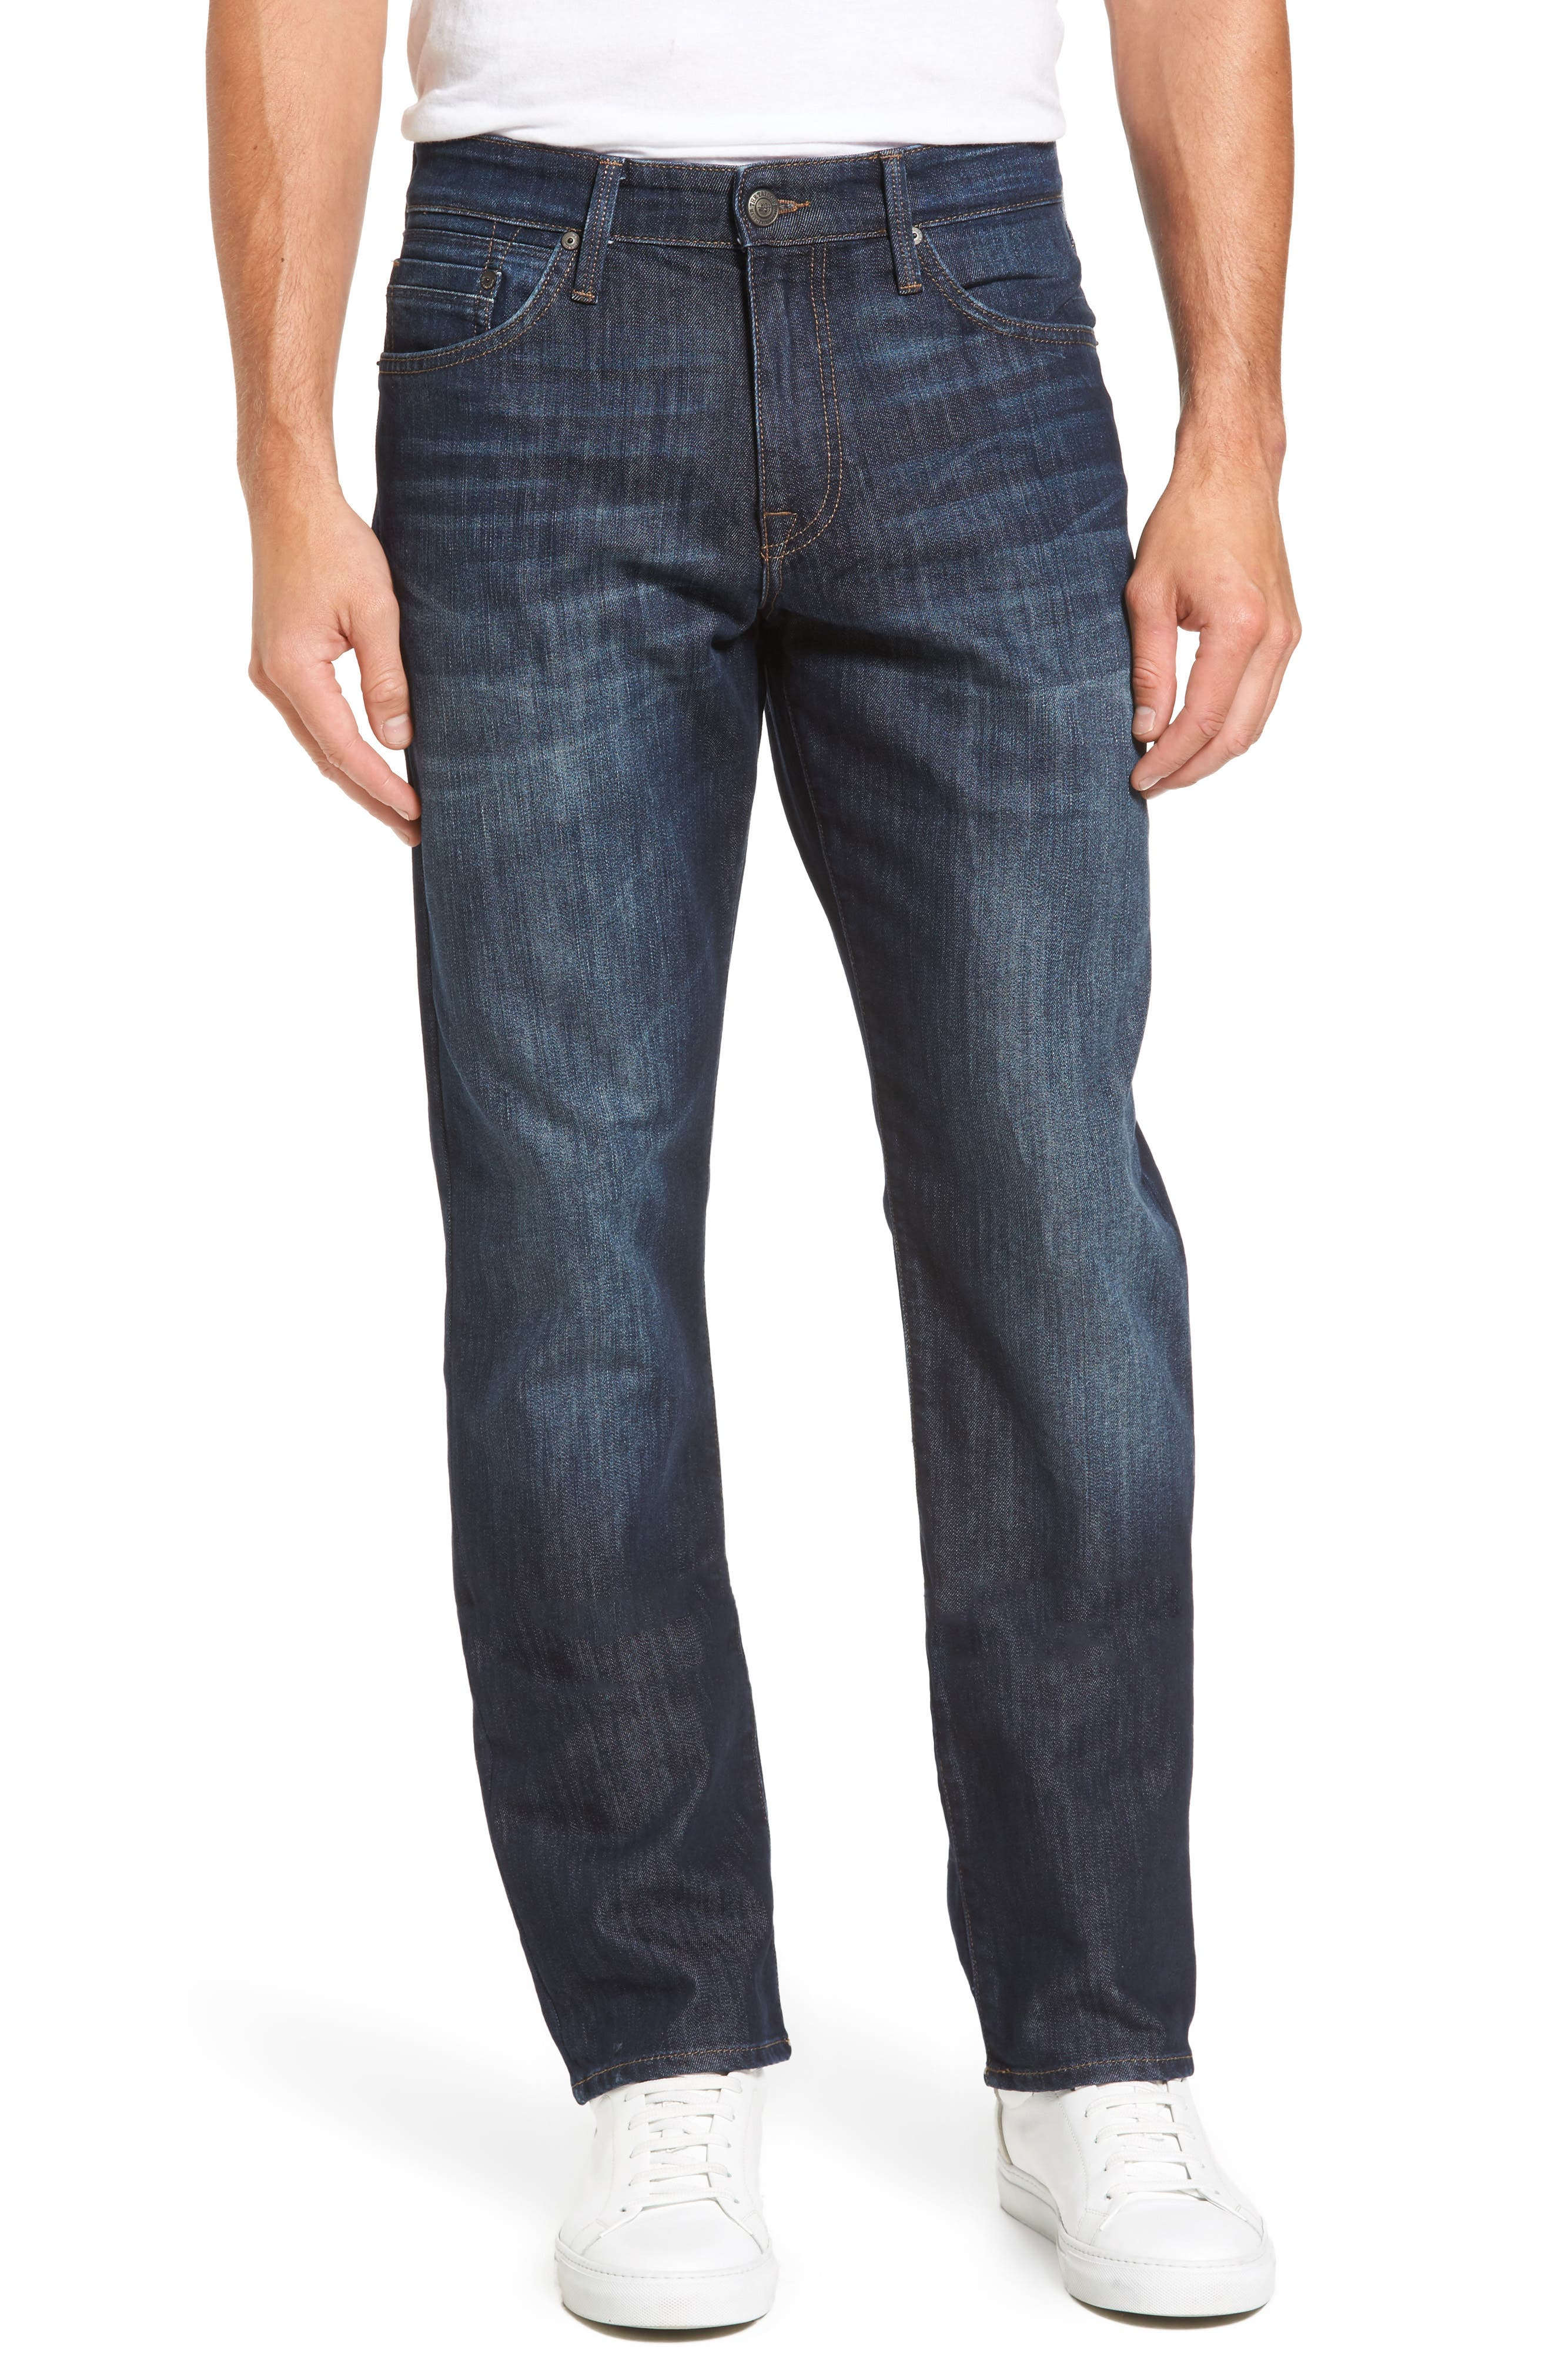 Matt Relaxed Fit Jeans,                             Main thumbnail 1, color,                             DARK STANFORD